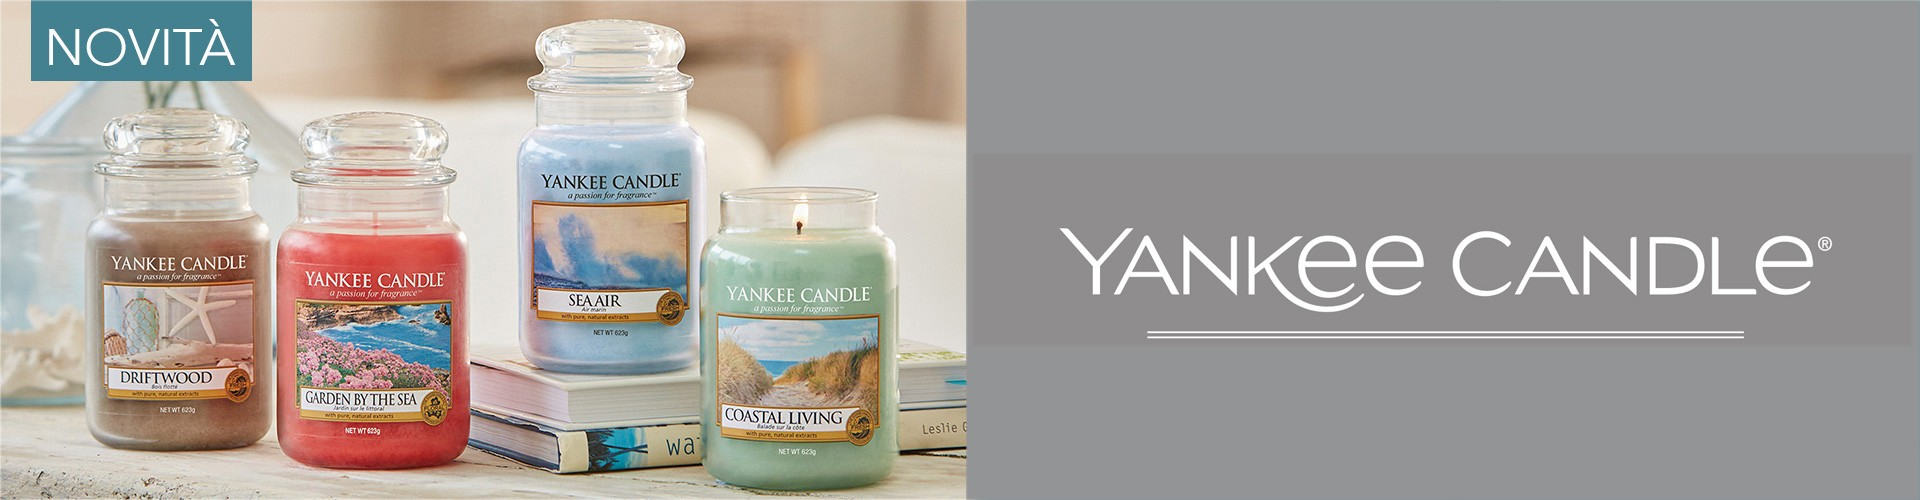 Yankee Candle Fragrances